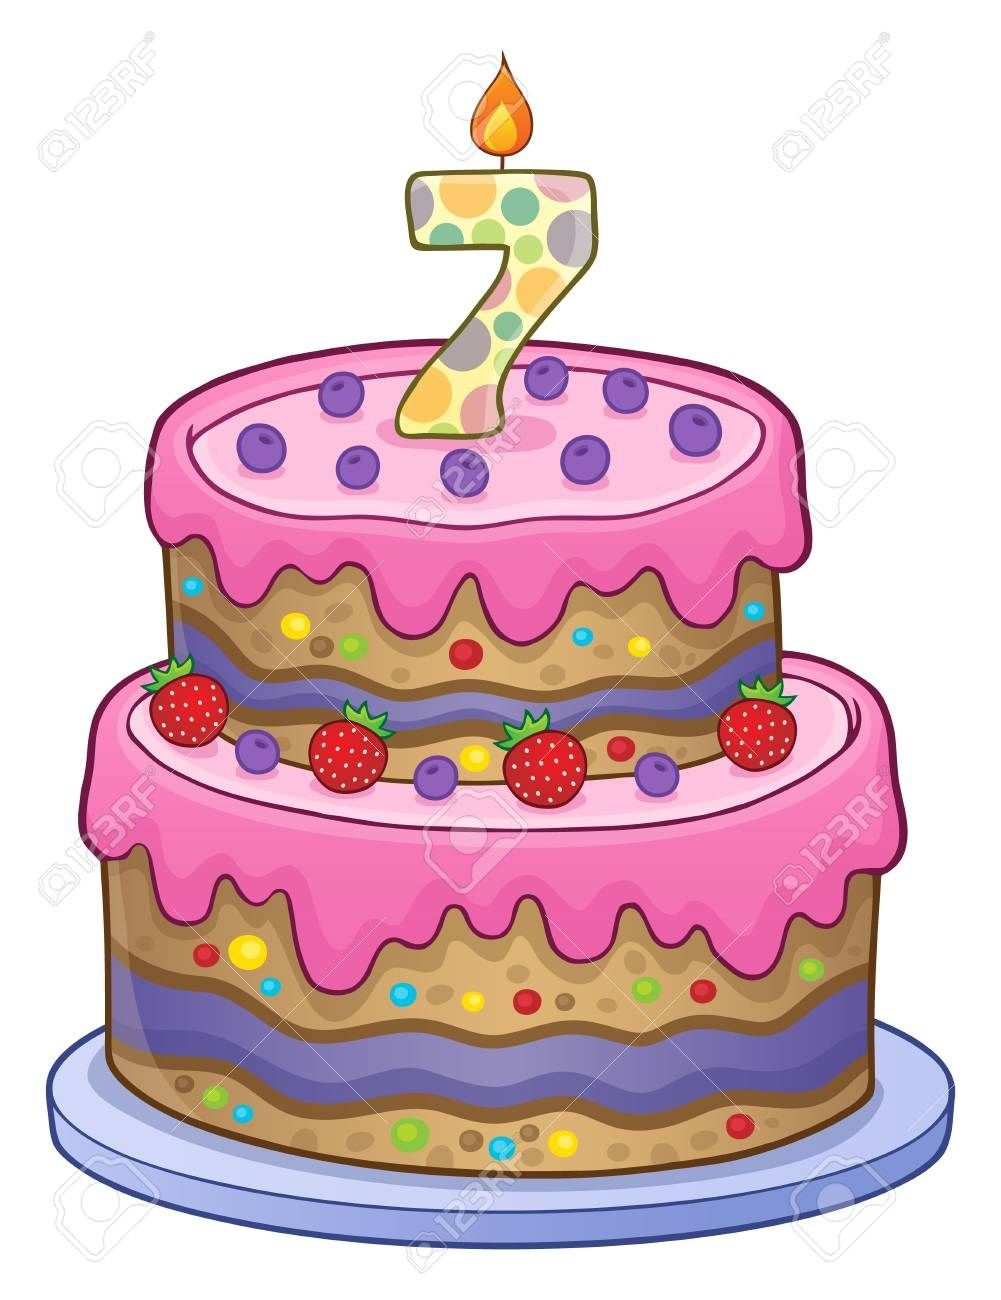 32 Exclusive Picture Of 7 Year Old Birthday Cake 2 Year Old